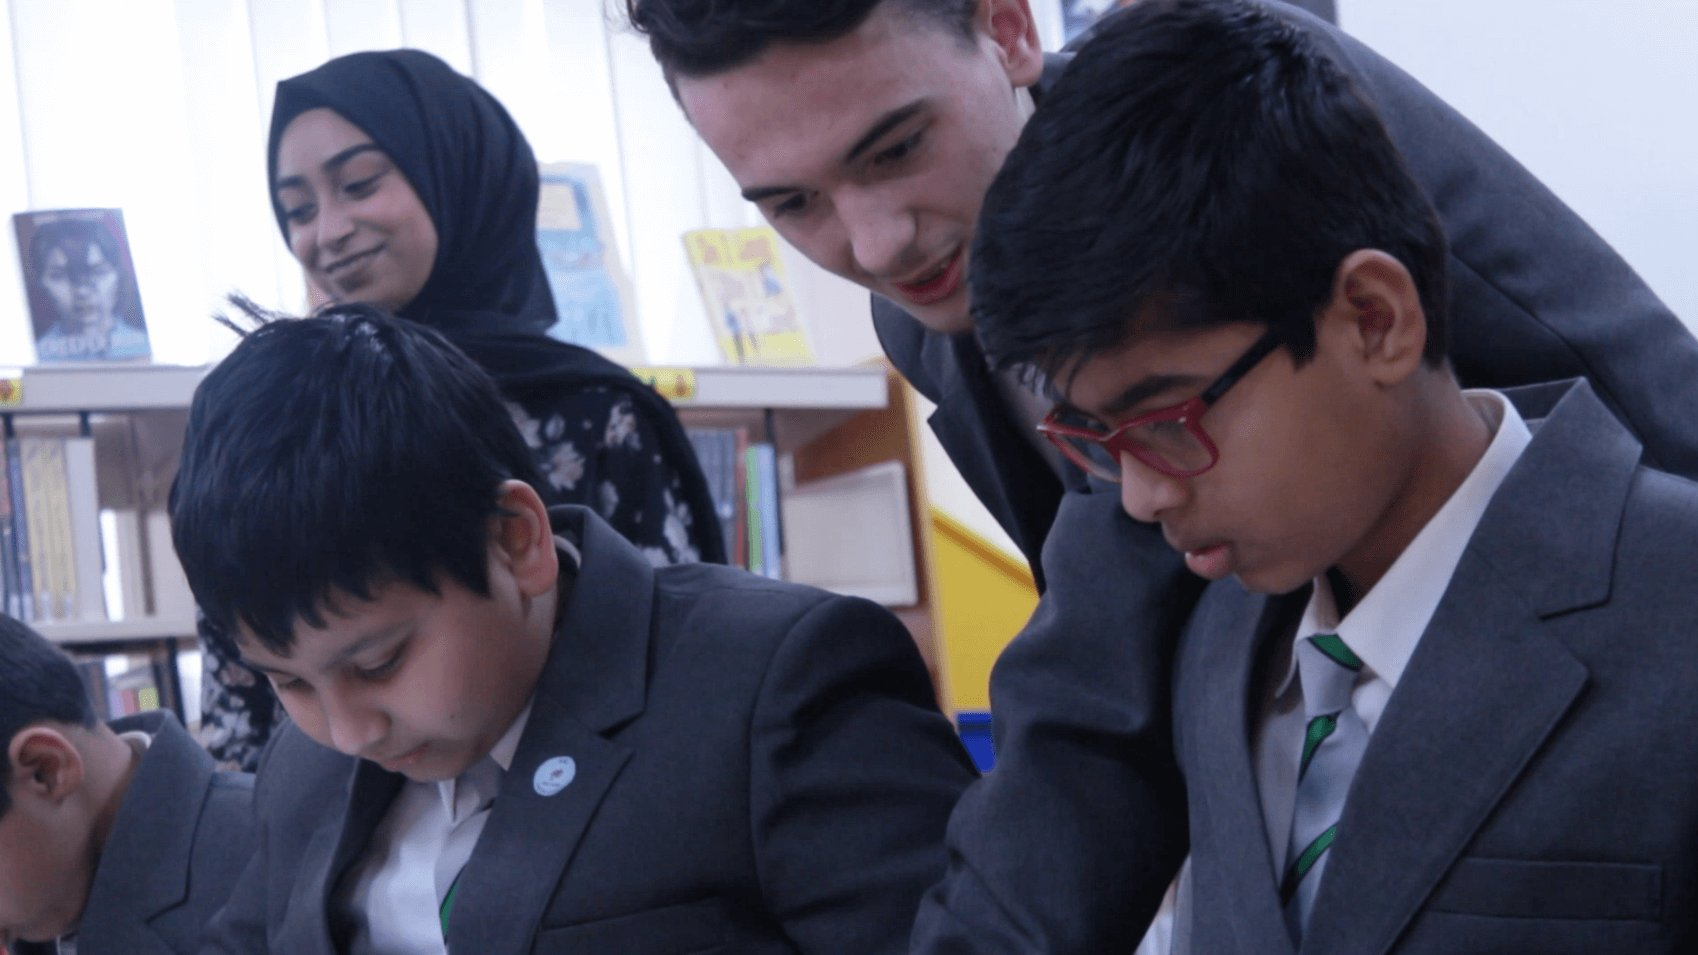 Pupils using FlashAcademy on their tablets